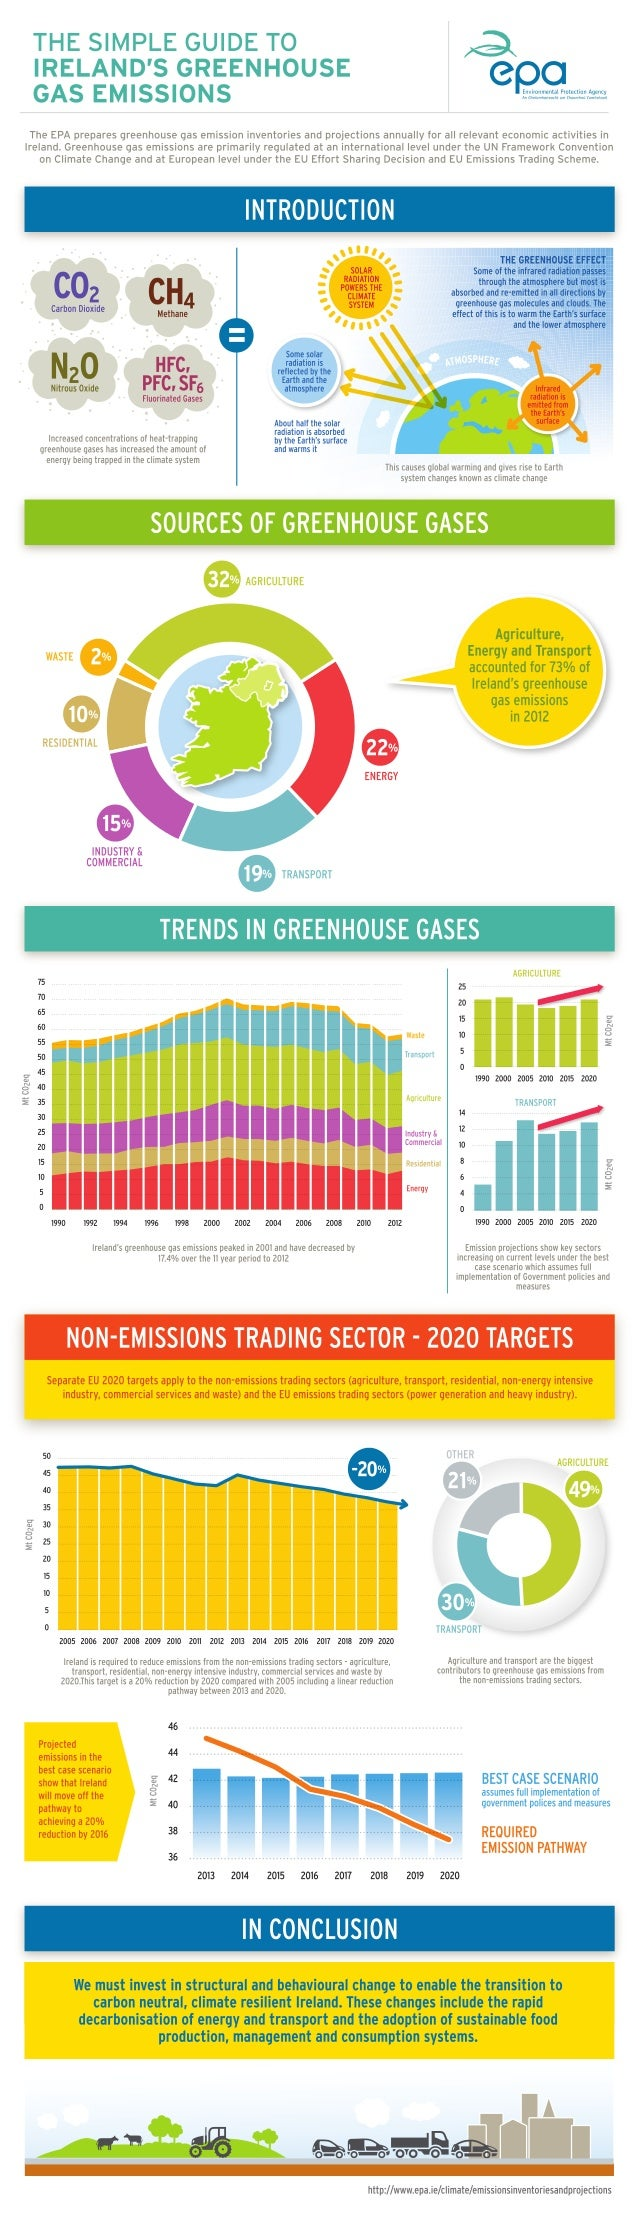 The simple guide to ireland's greenhouse gas emissions